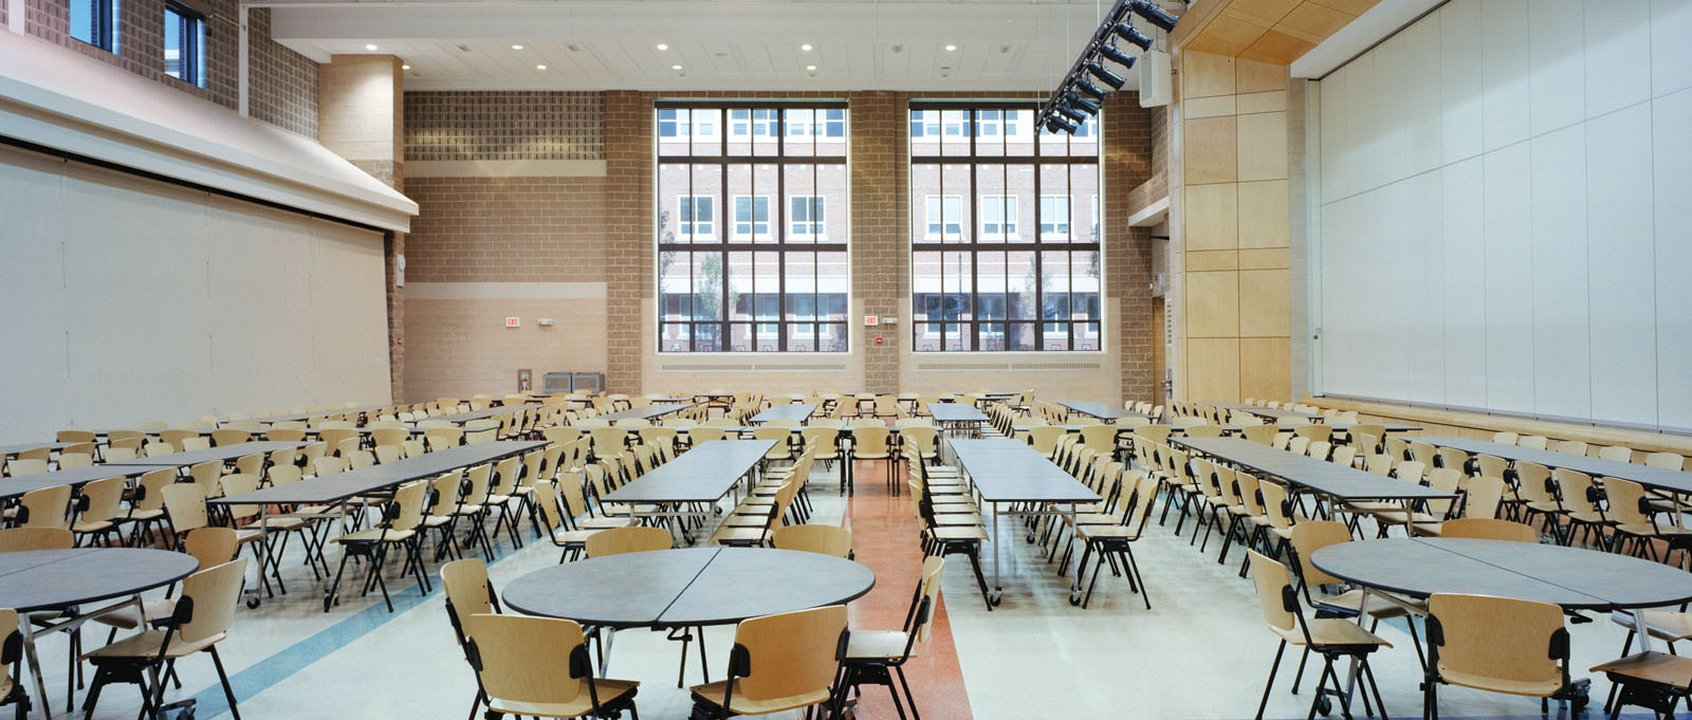 project ct engineering of school high design university science hartford architecture schools interior in jcj